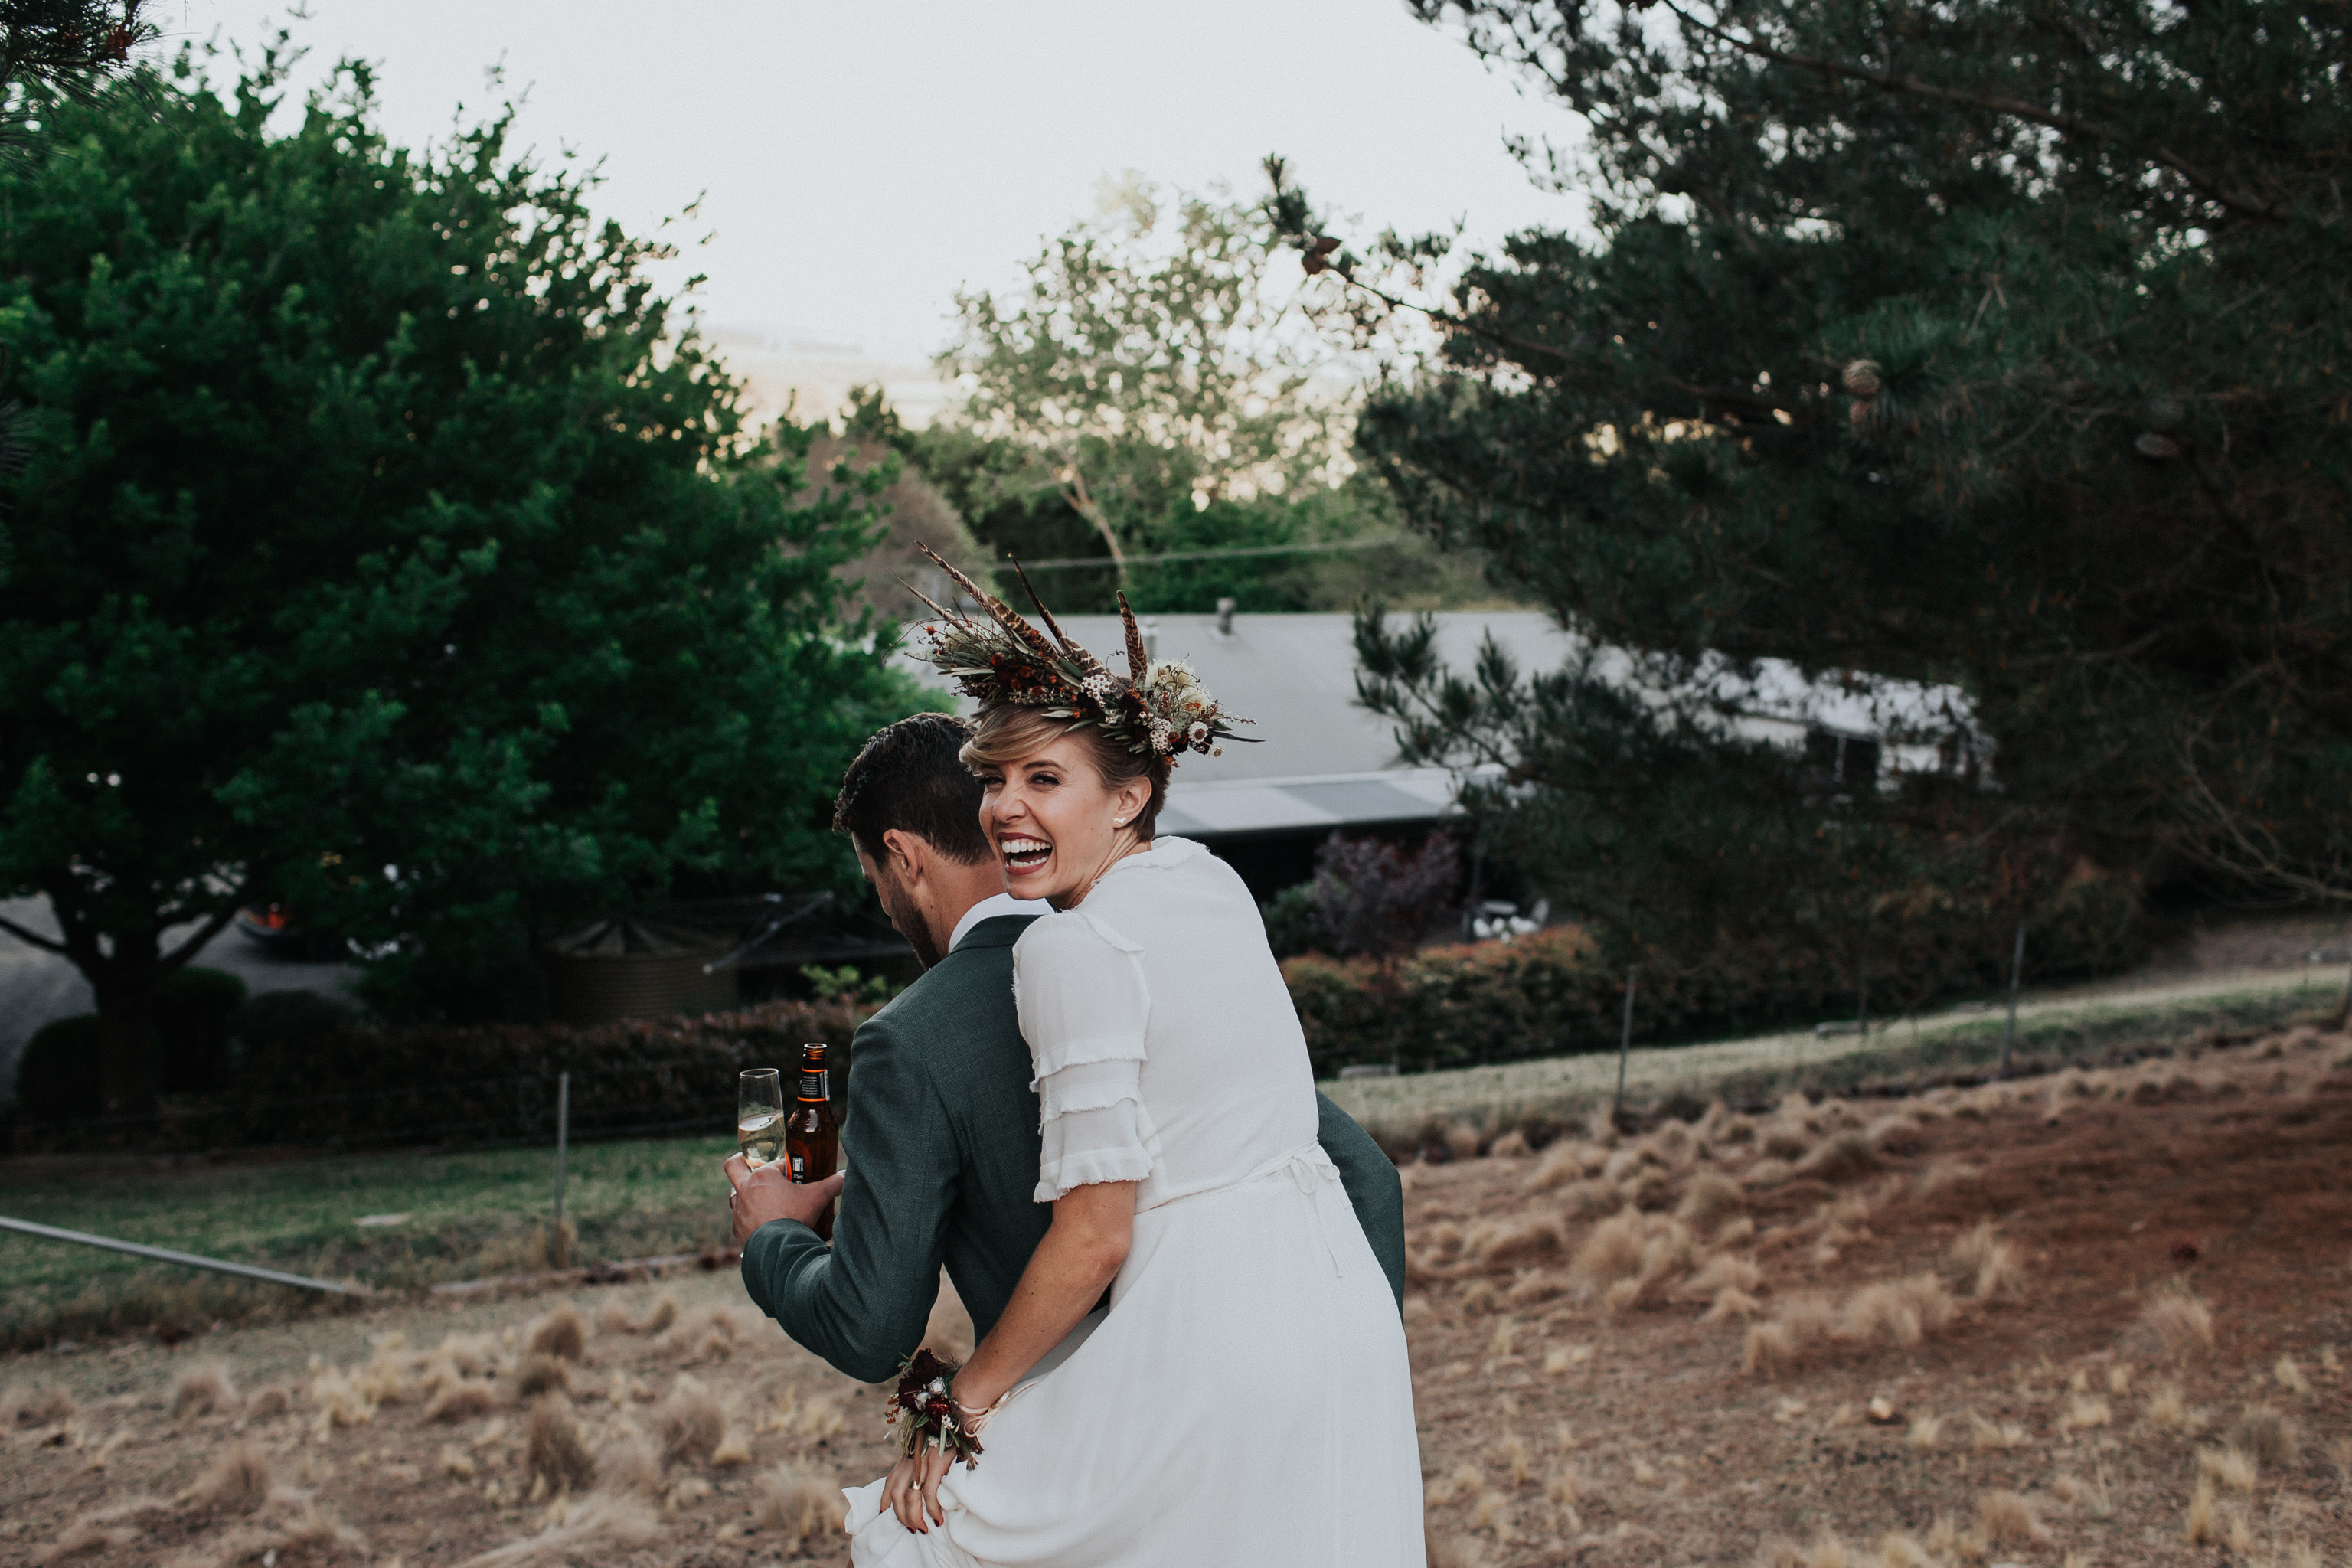 Bride piggy backing on groom laughing